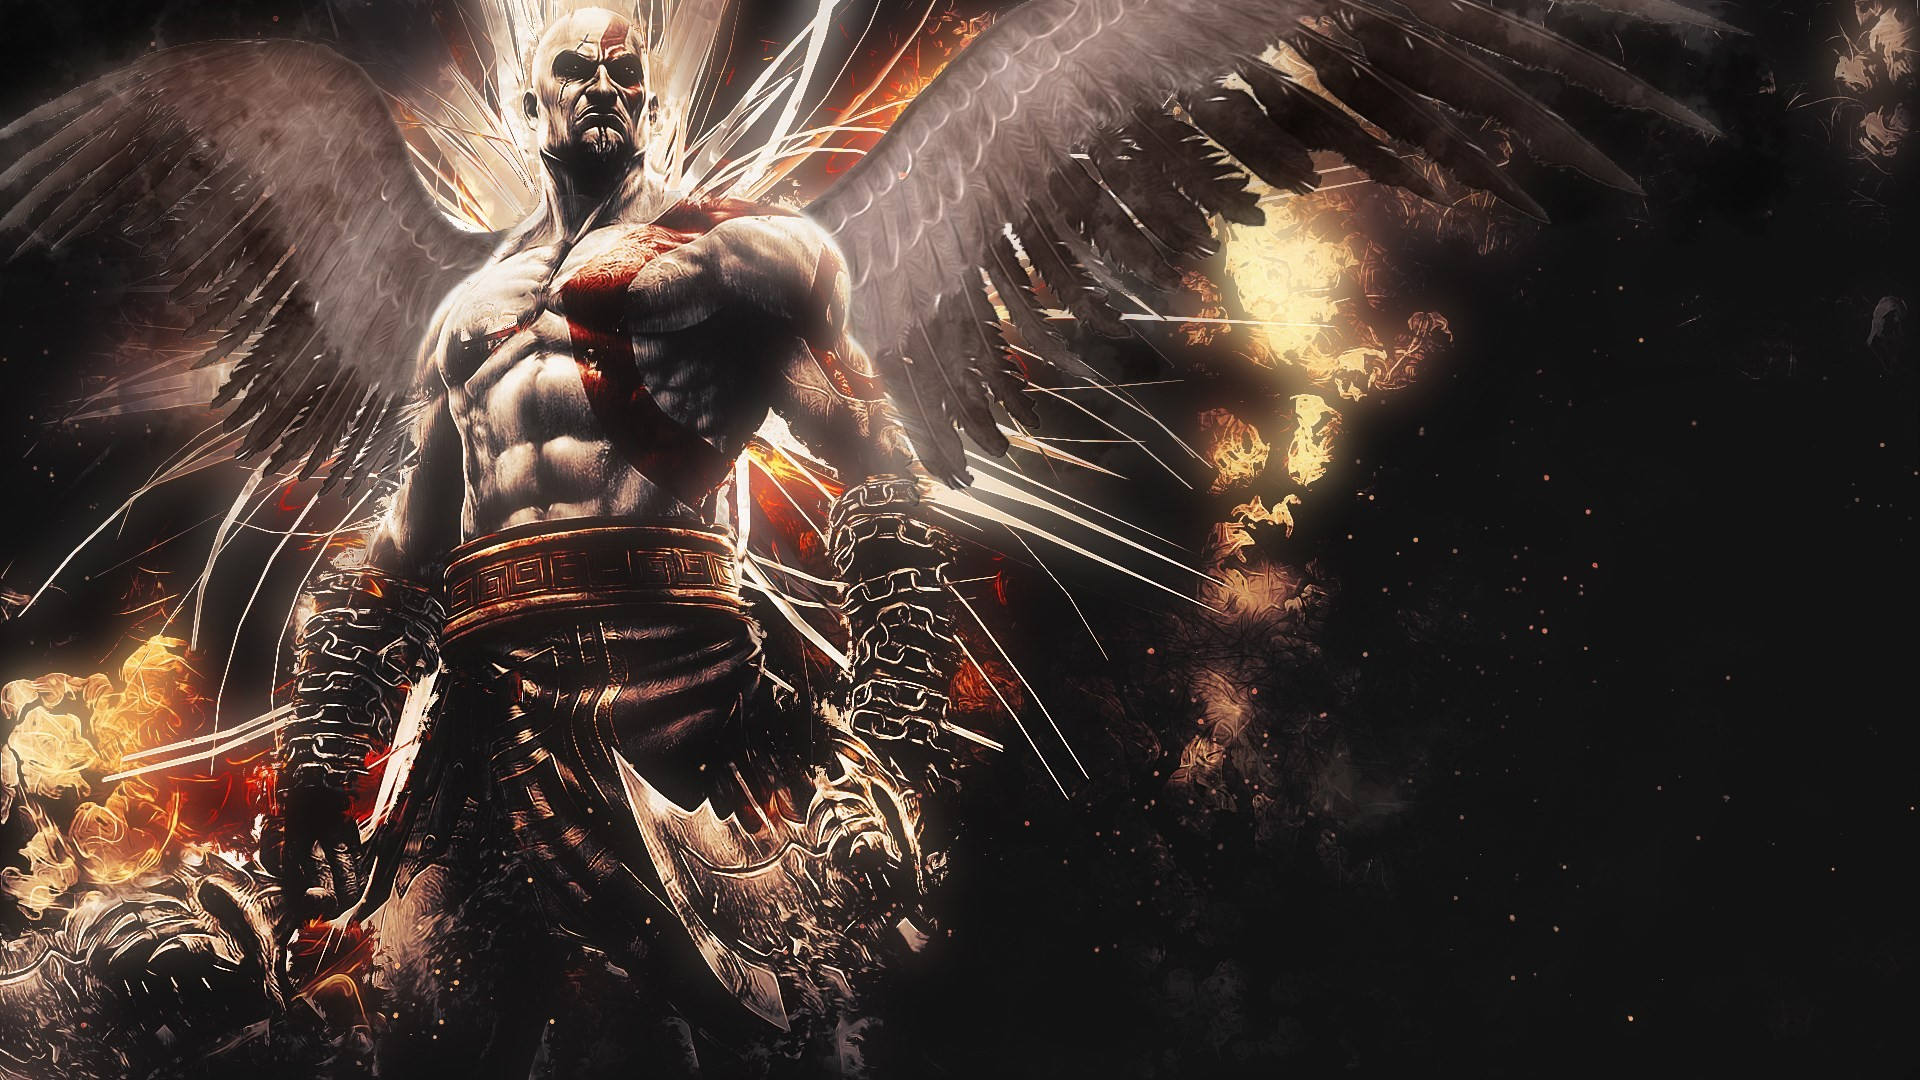 GOD OF WAR Remastered coming to PS4 by July